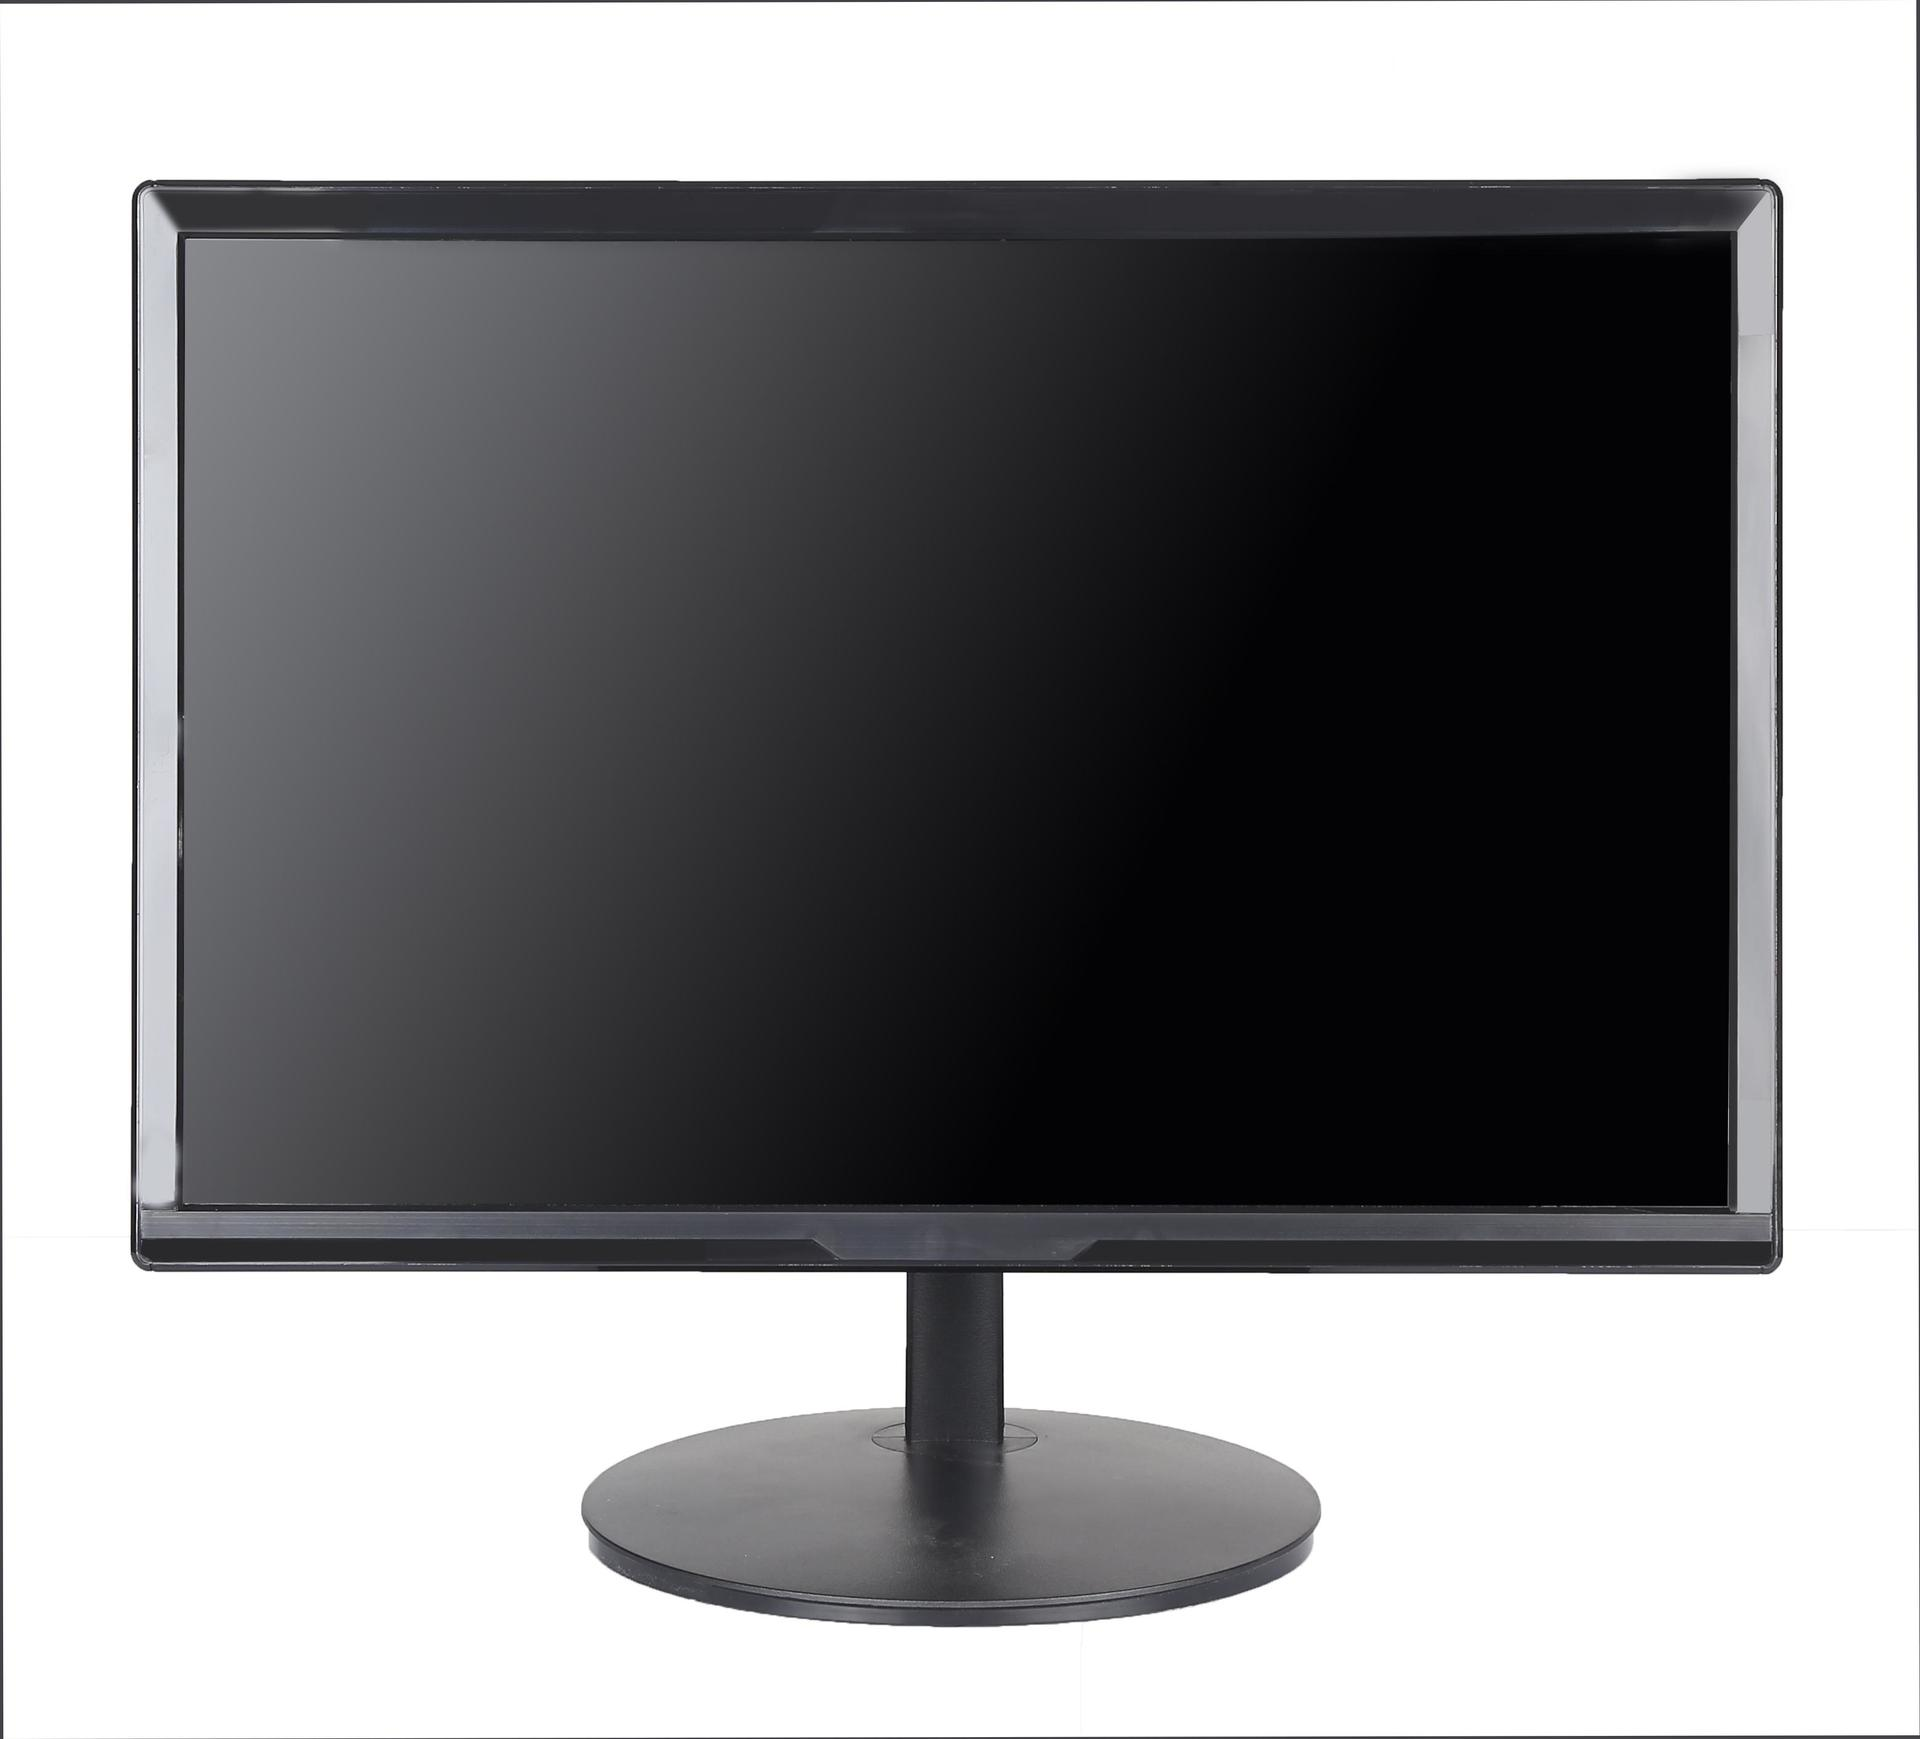 slim body 24 inch monitors for sale oem service for lcd tv screen